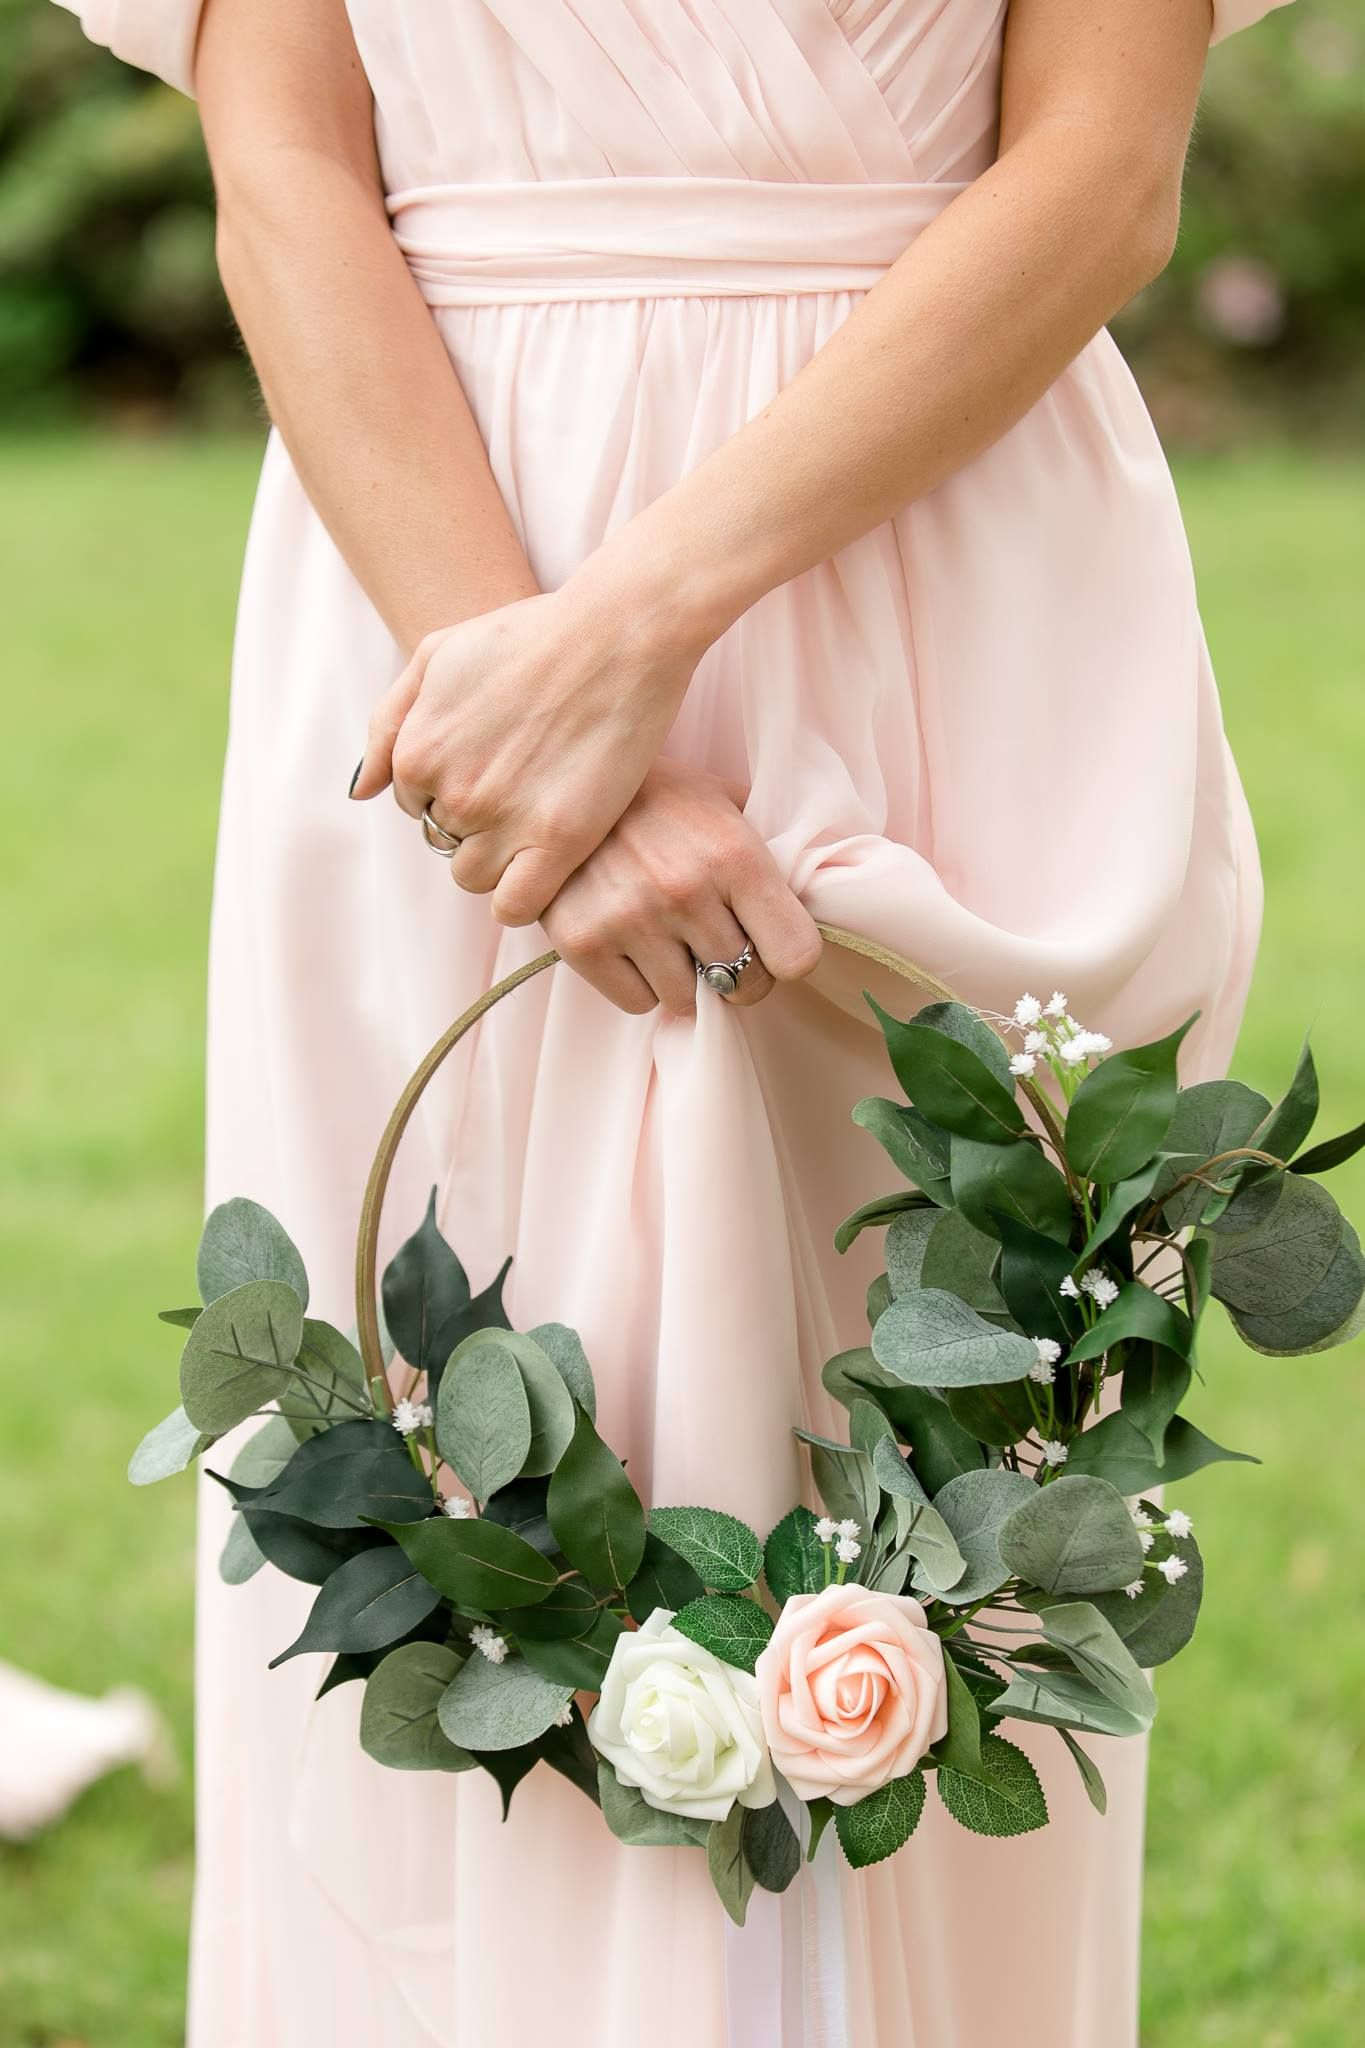 DIY Bridesmaid Floral Hoops #weddingbridesmaidbouquets